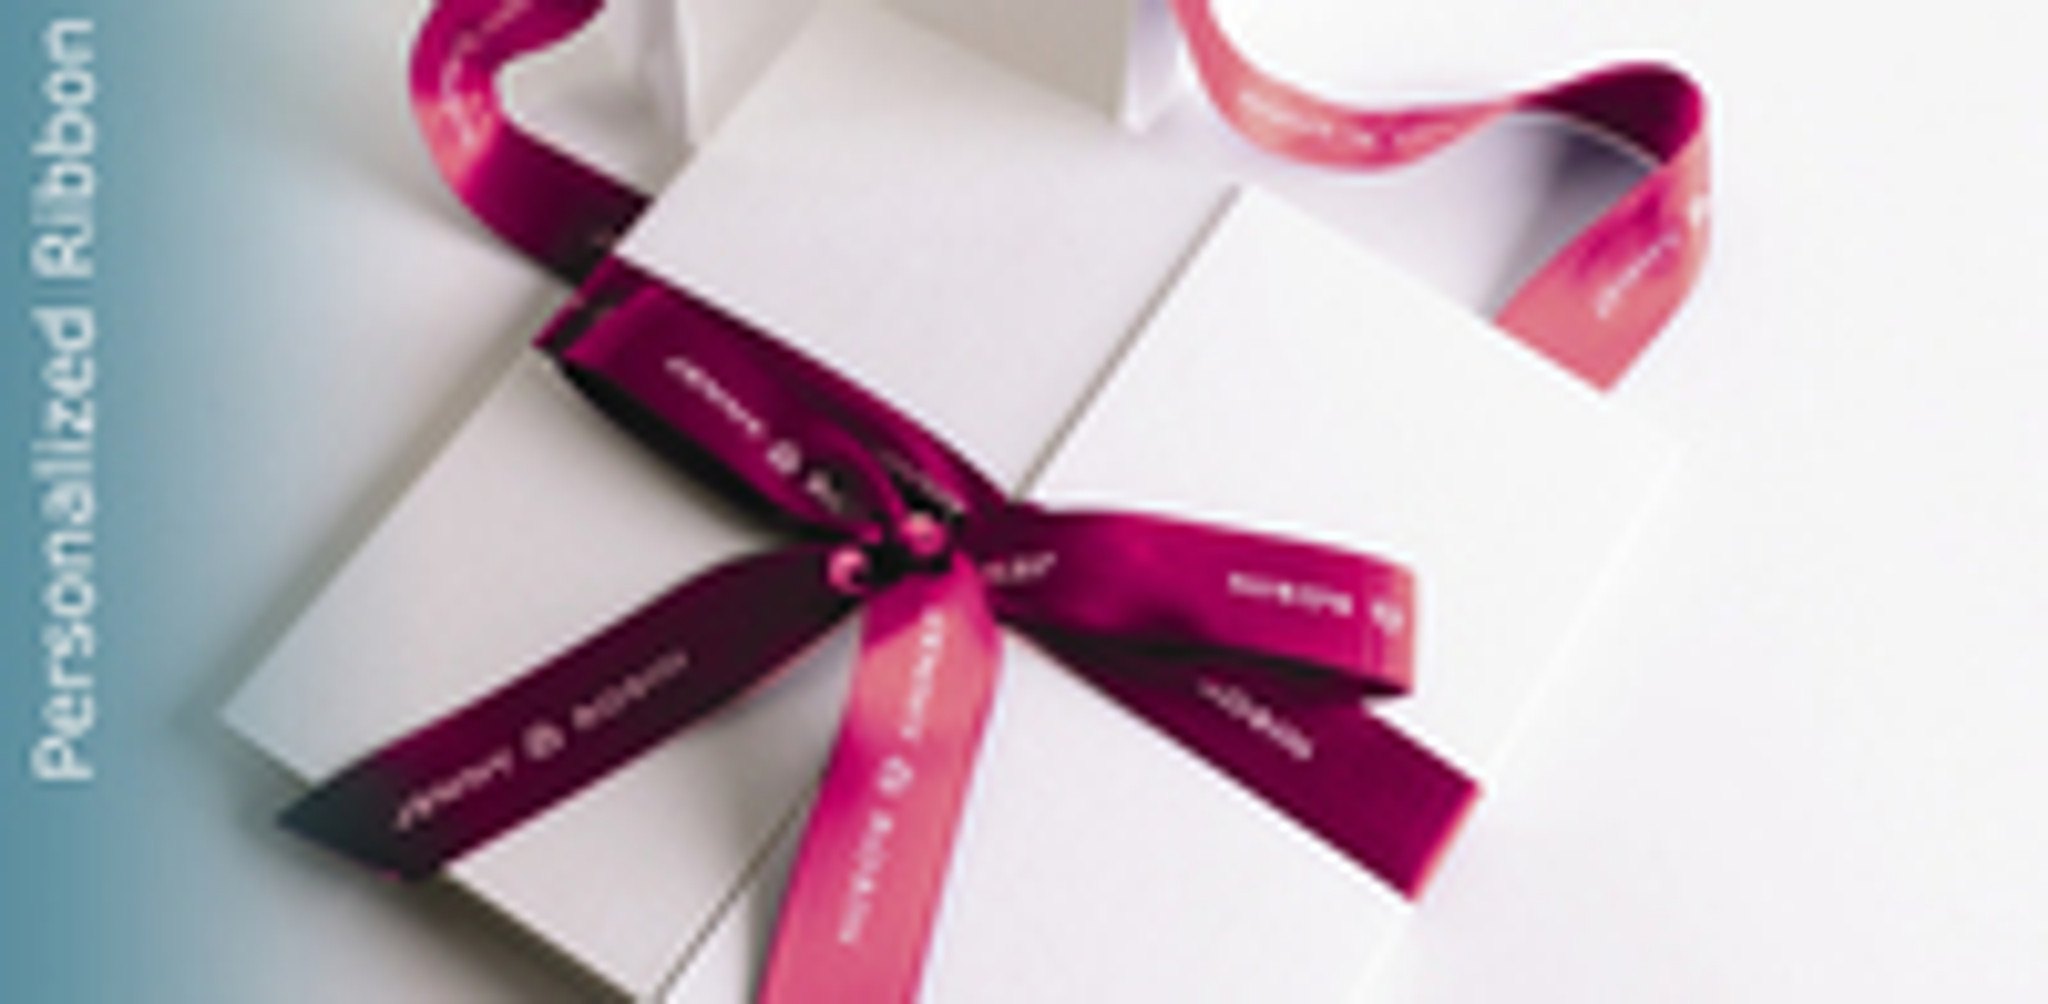 3 Reasons Corporate Love Logo Printed To Wrap Gifts